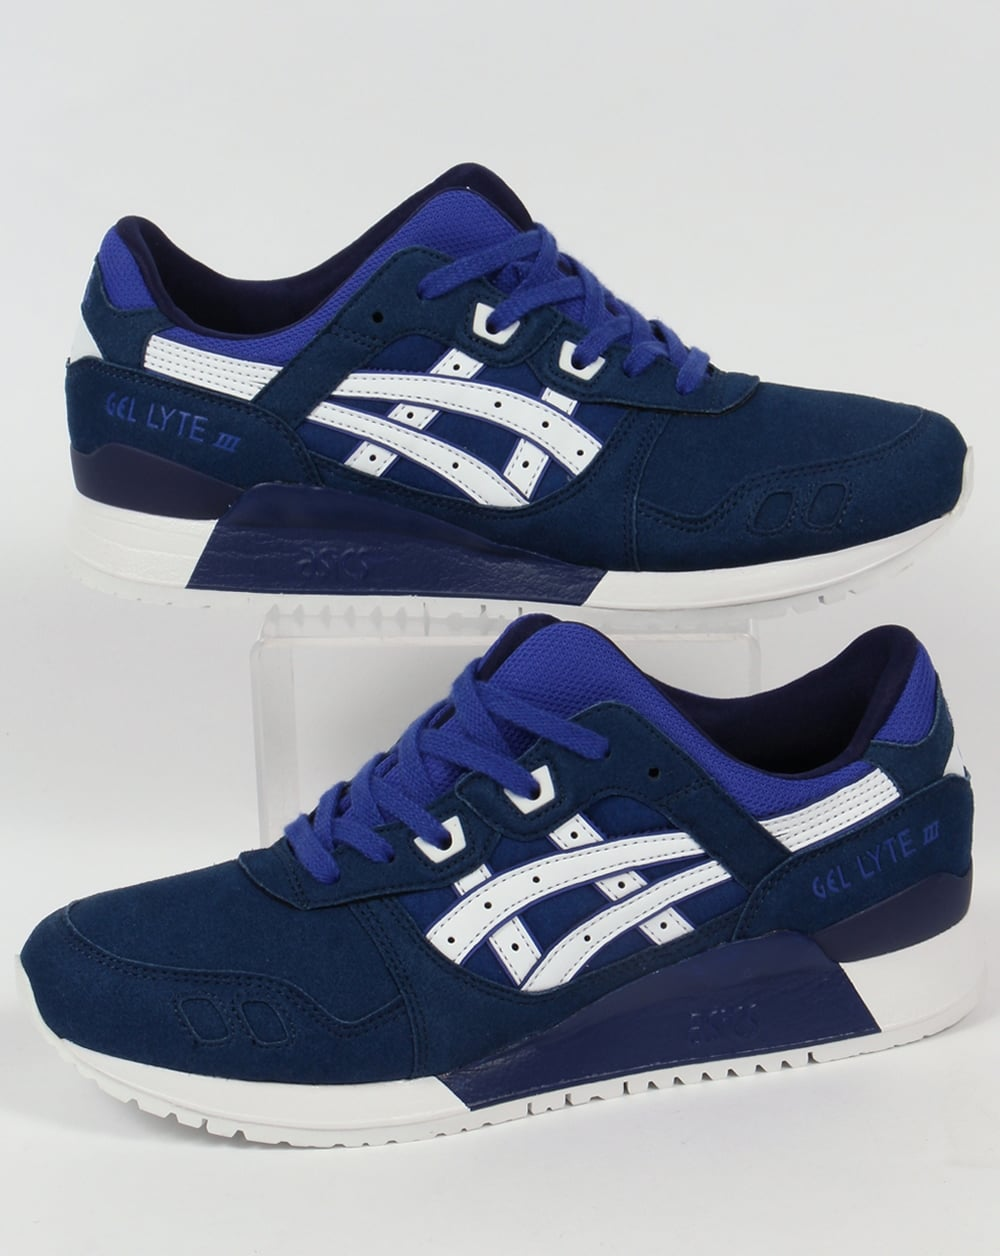 premium selection 3138c 2a0b1 Asics Gel Lyte III Trainers Blue/White